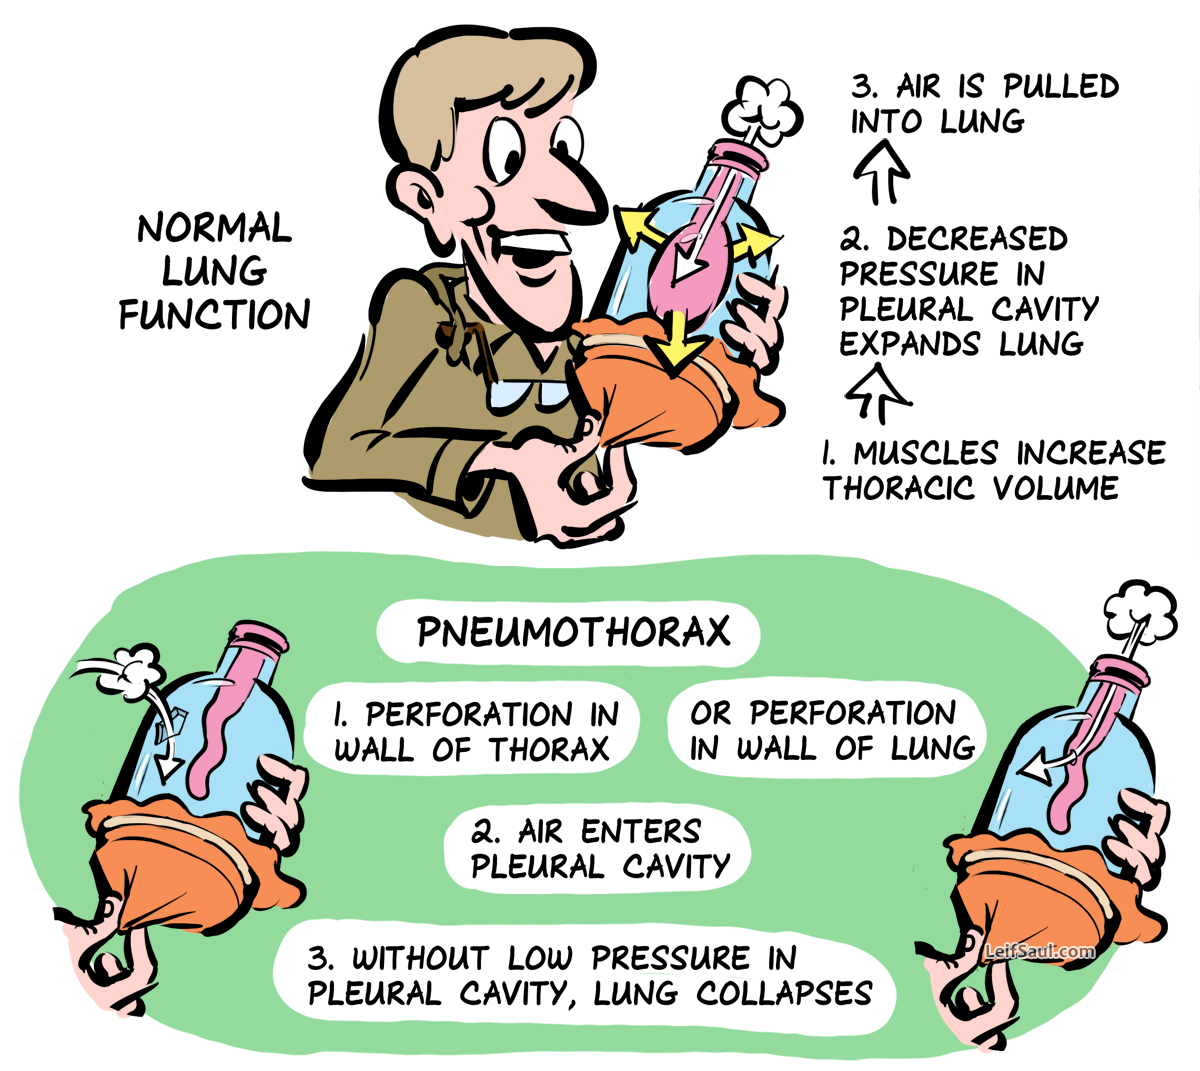 A bottle model to explain lung ventilation and pneumothorax